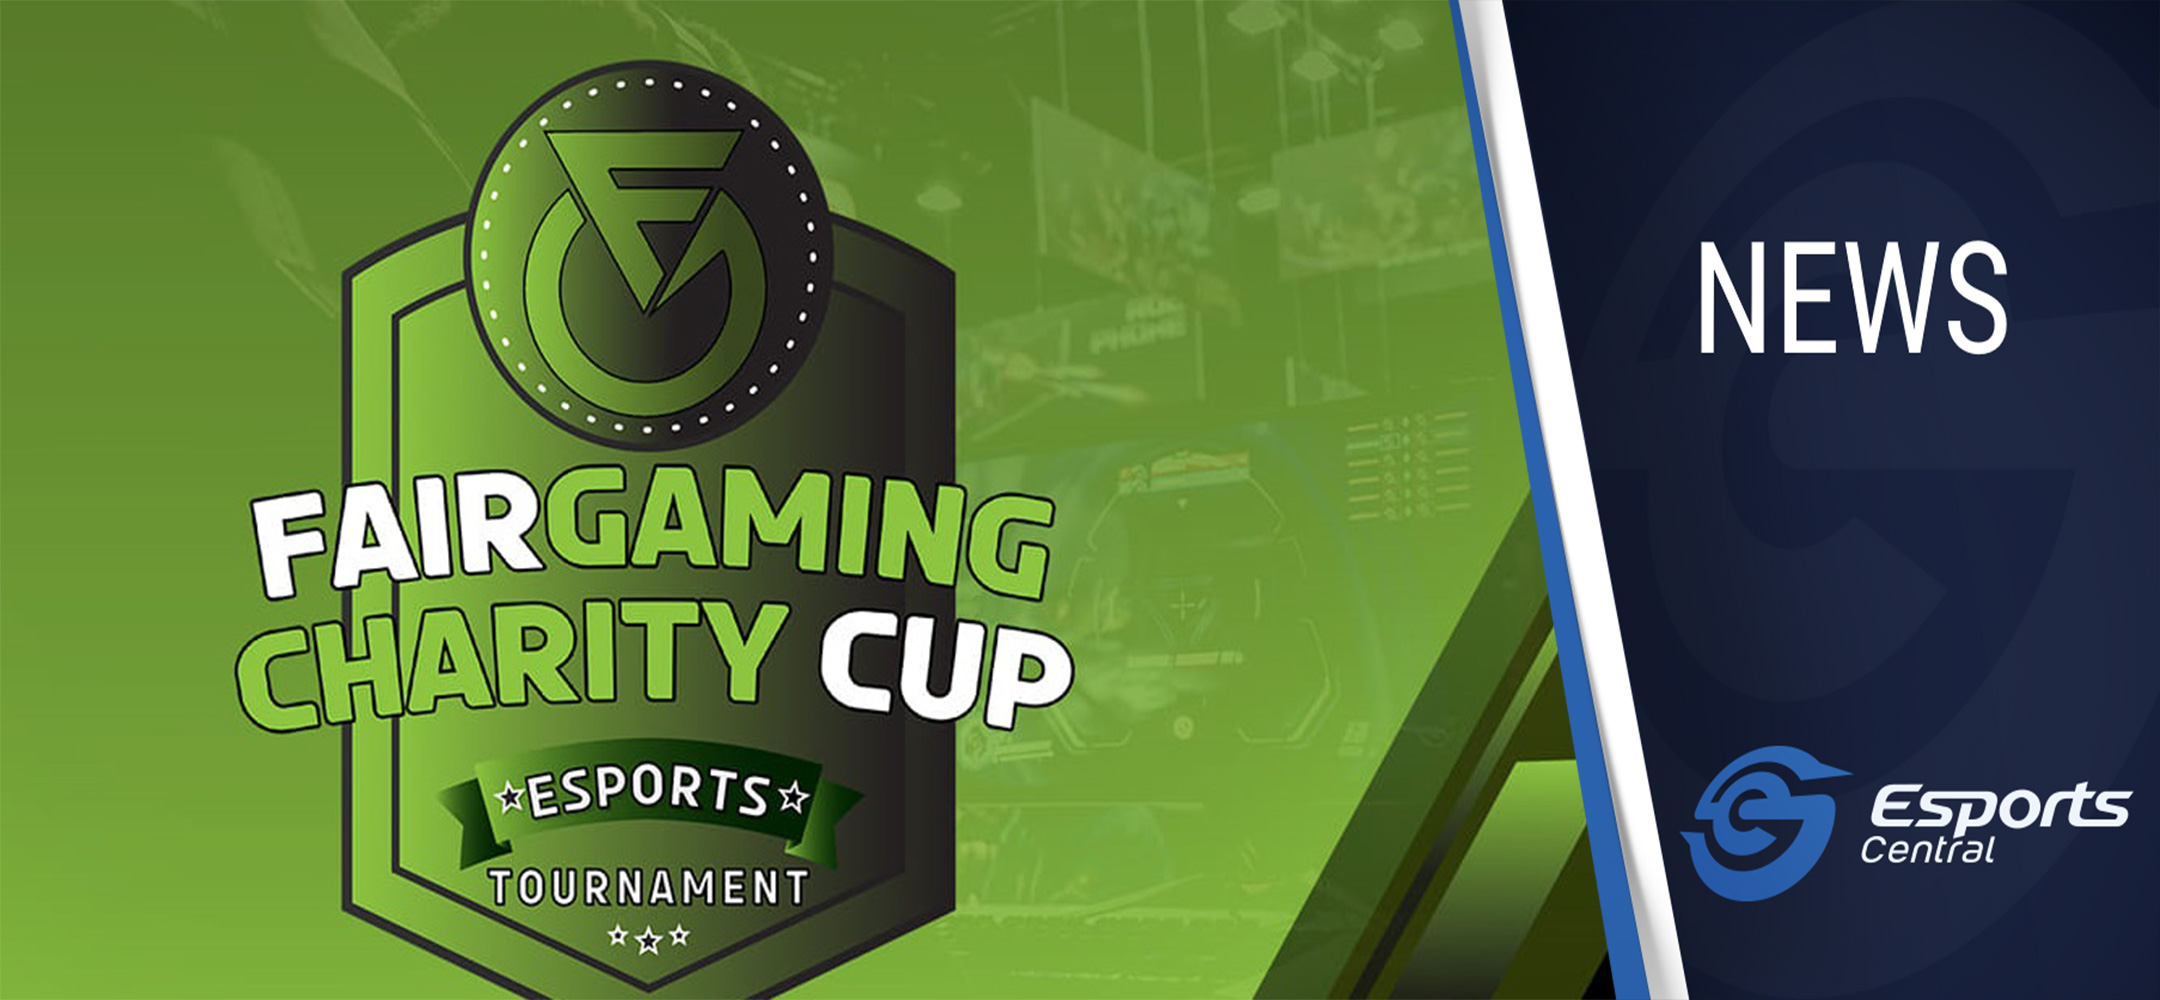 Fairgaming Charity Cup